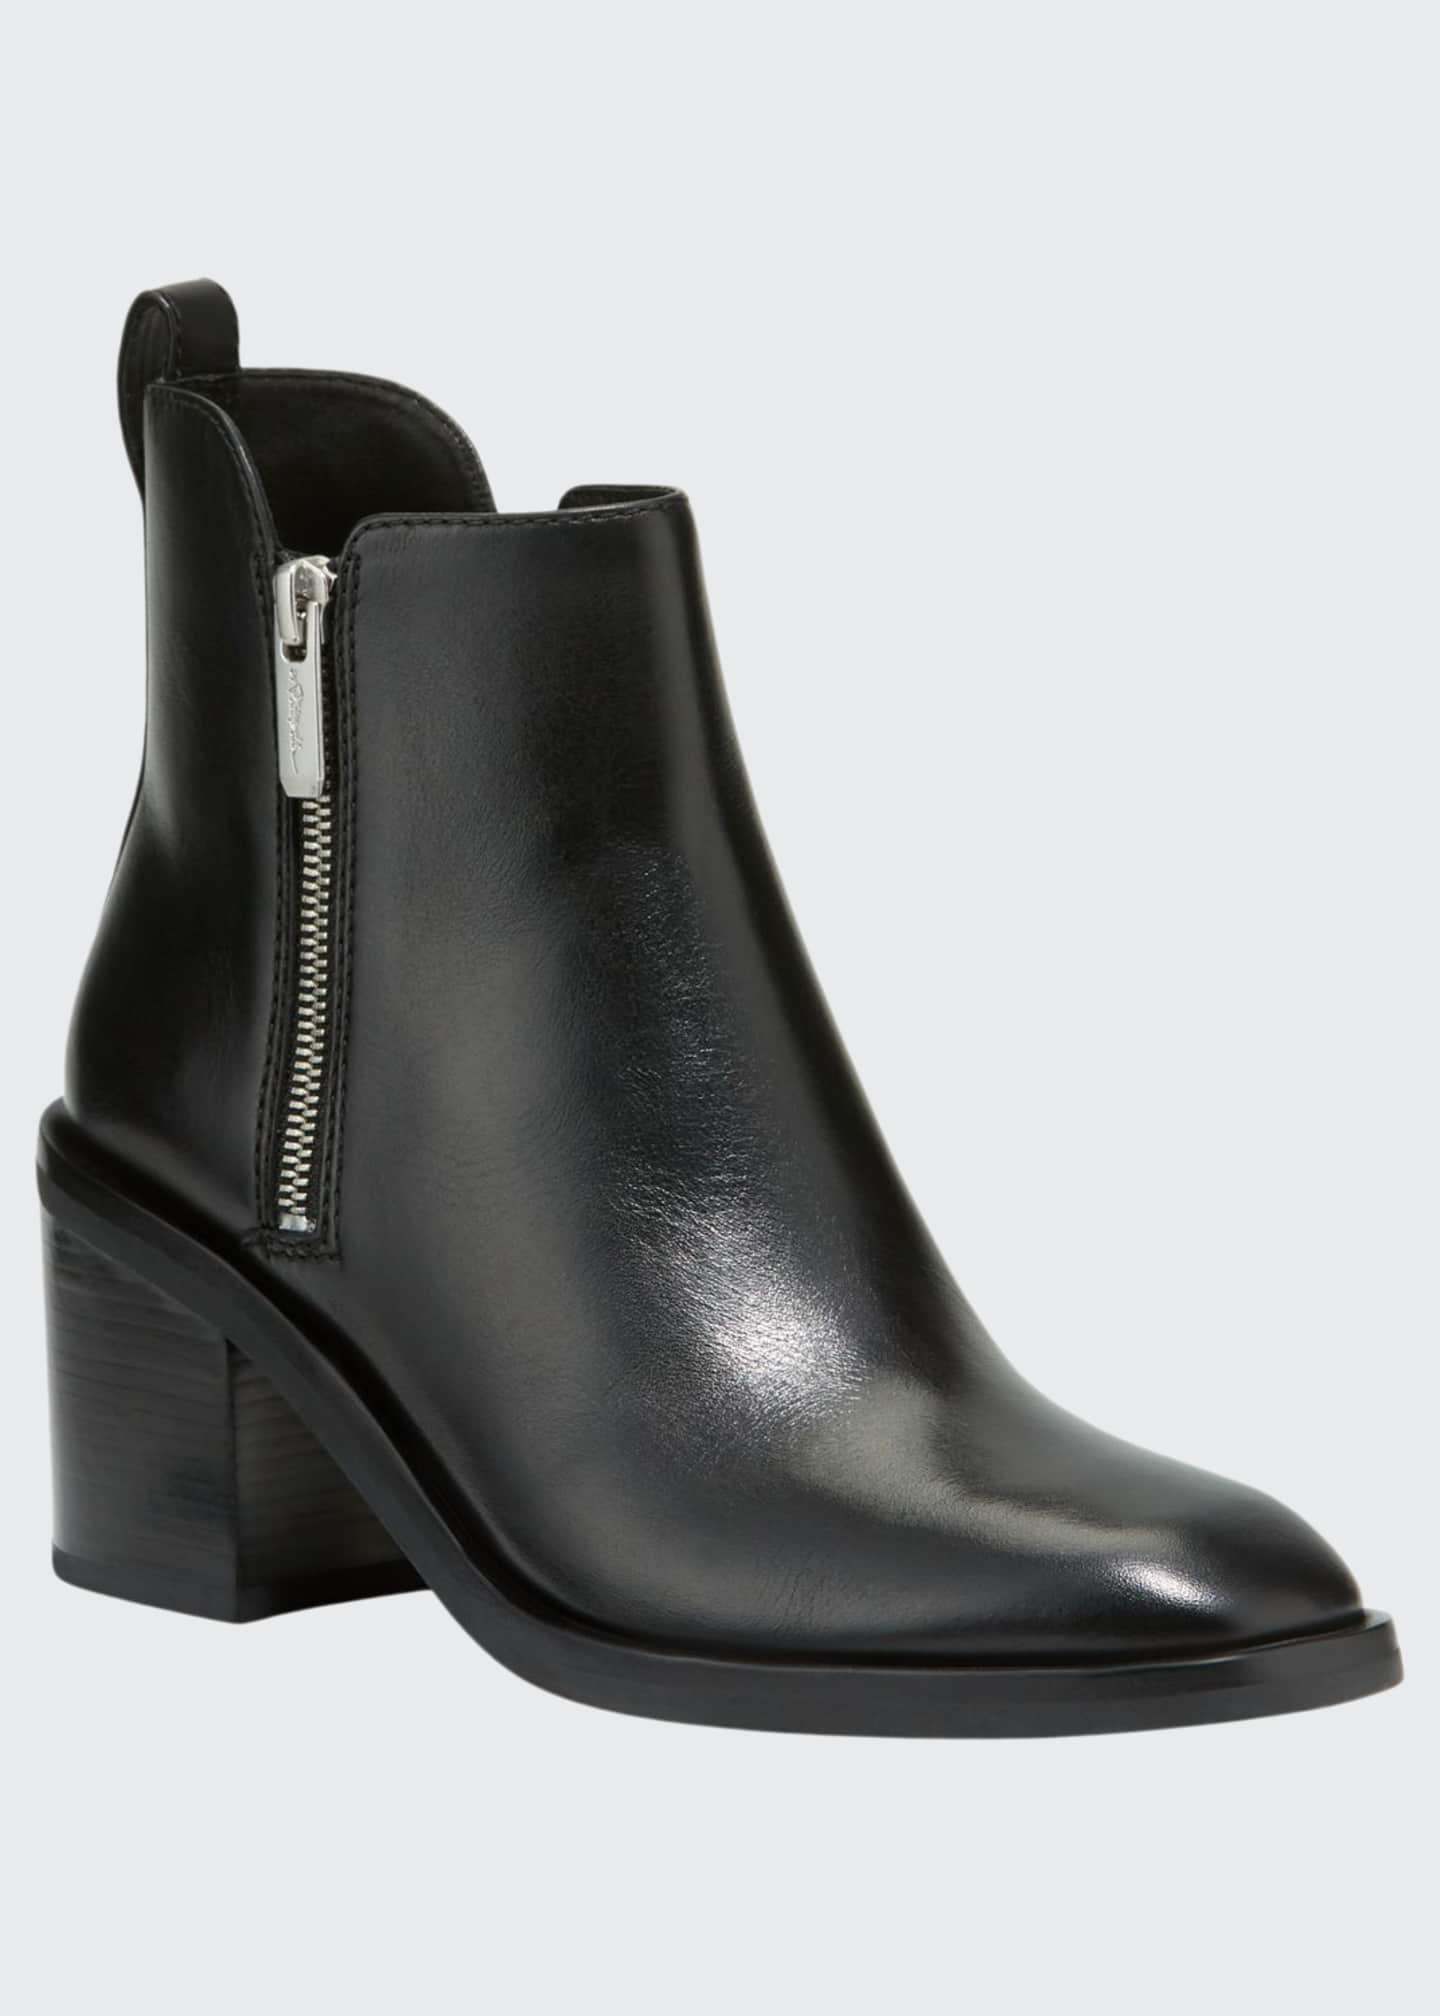 3.1 Phillip Lim Alexa Leather Double-Zip Ankle Booties